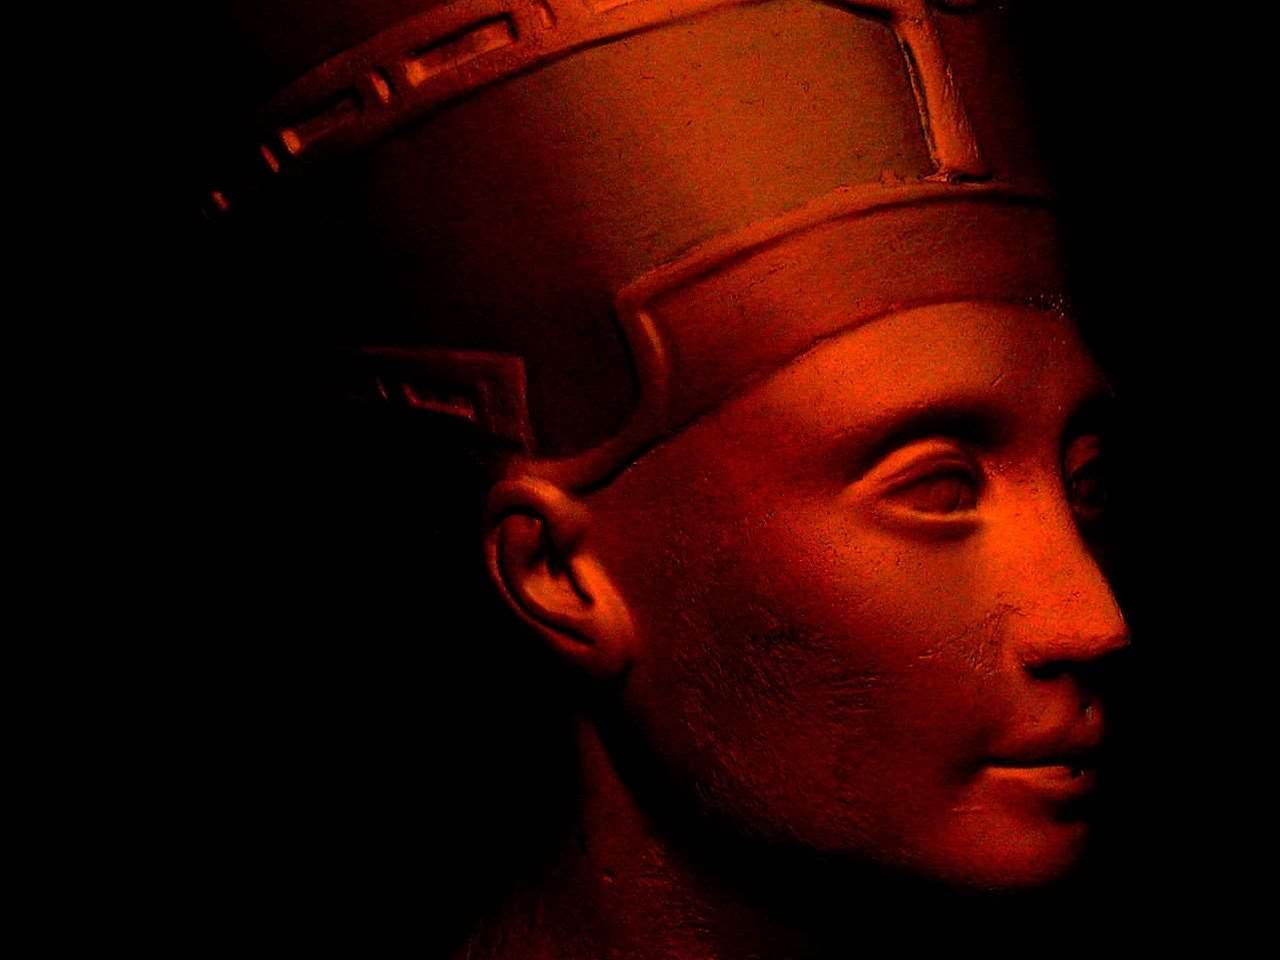 Artists Covertly 3D Scanned Nefertiti's Bust And Released It Online